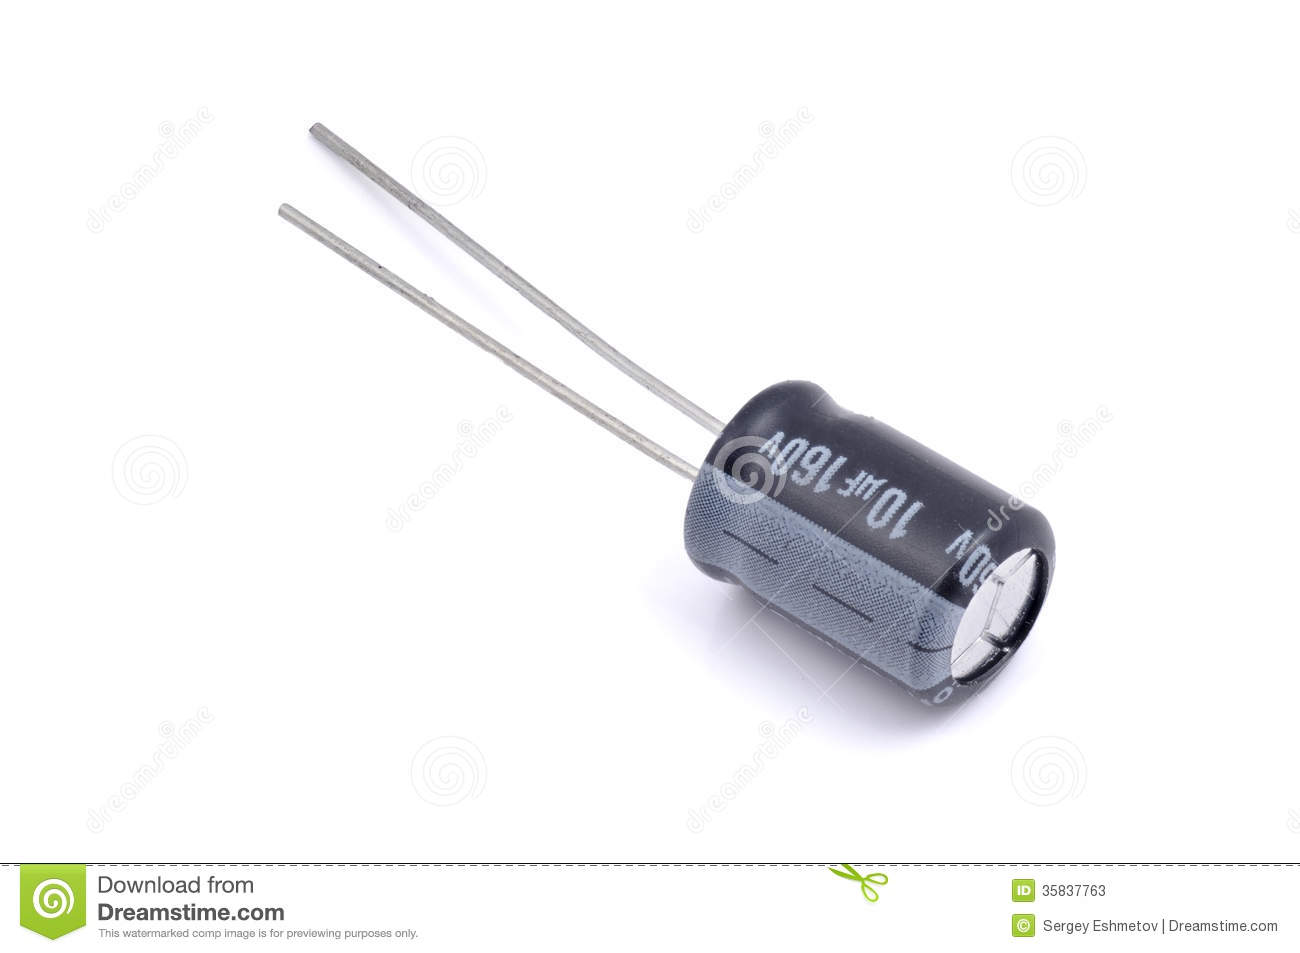 Qq3898 likewise 1980 Sony 2 Channel Receivers likewise Mag o Ignition System furthermore Circuit Diagram Of A Electric Motor furthermore Why The Capacitor In Your Power Supply Filter Is Too Big. on how a capacitor works animation